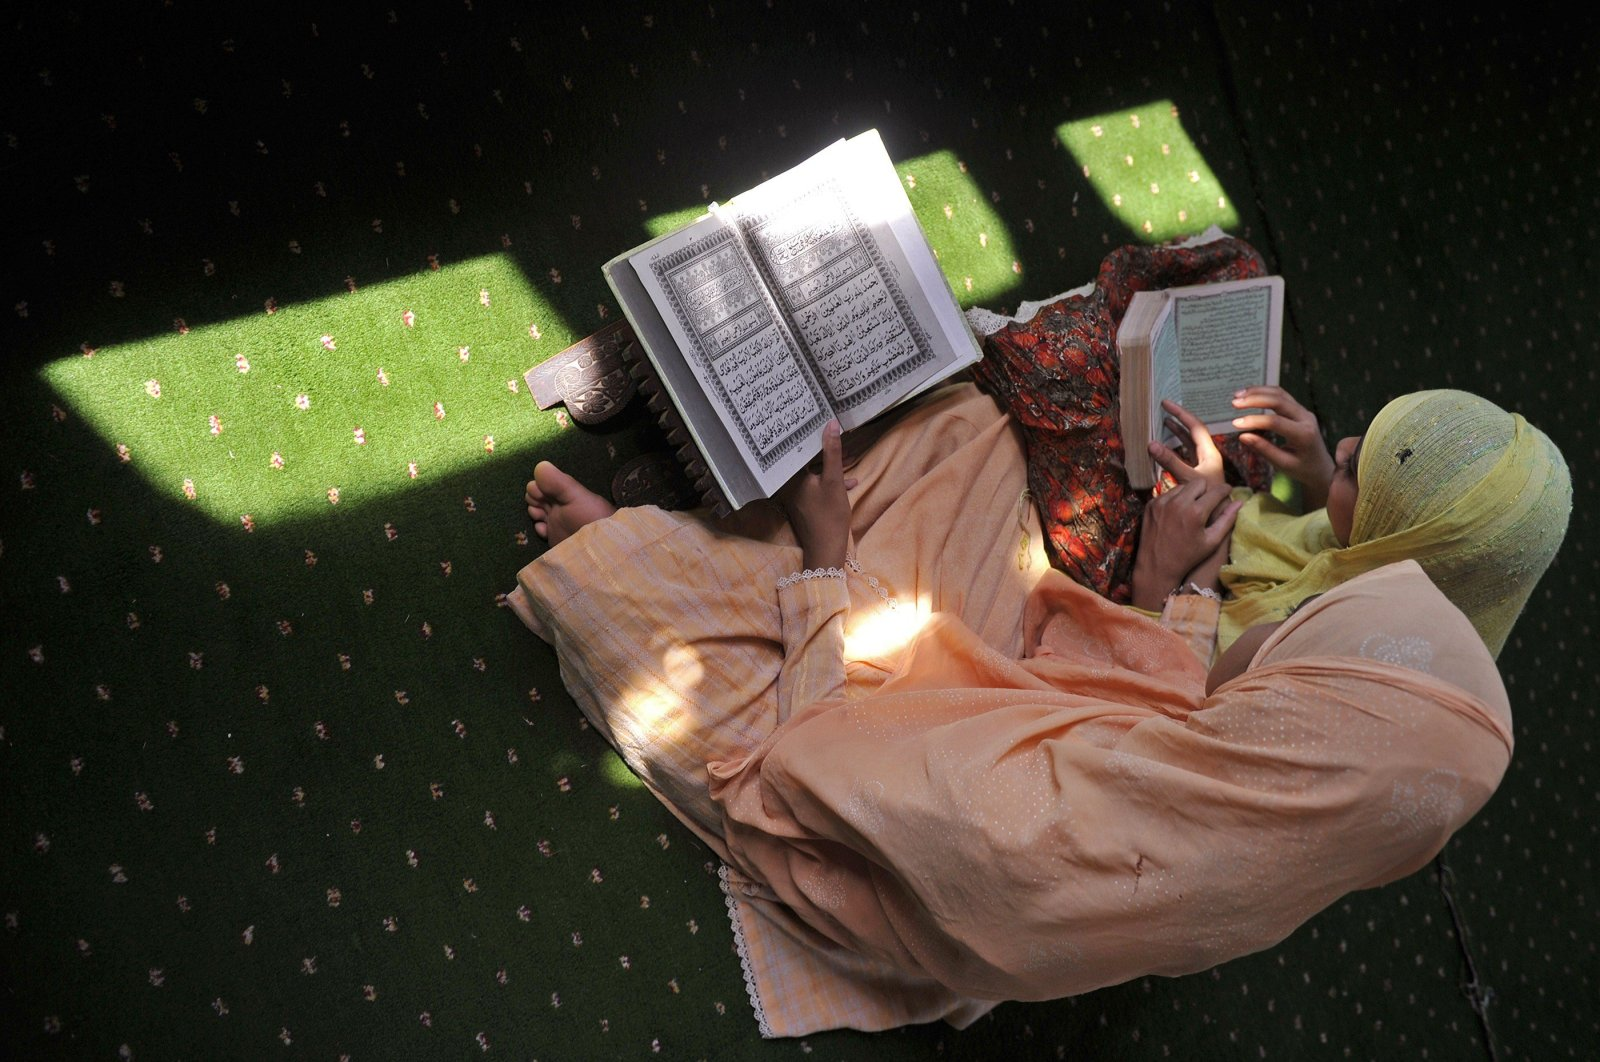 Two Kashmiri Muslim women read the Quran at the Shahi Hamdaan shrine on the first Friday of Ramadan in Srinagar on Aug. 5, 2011. (AFP Photo)